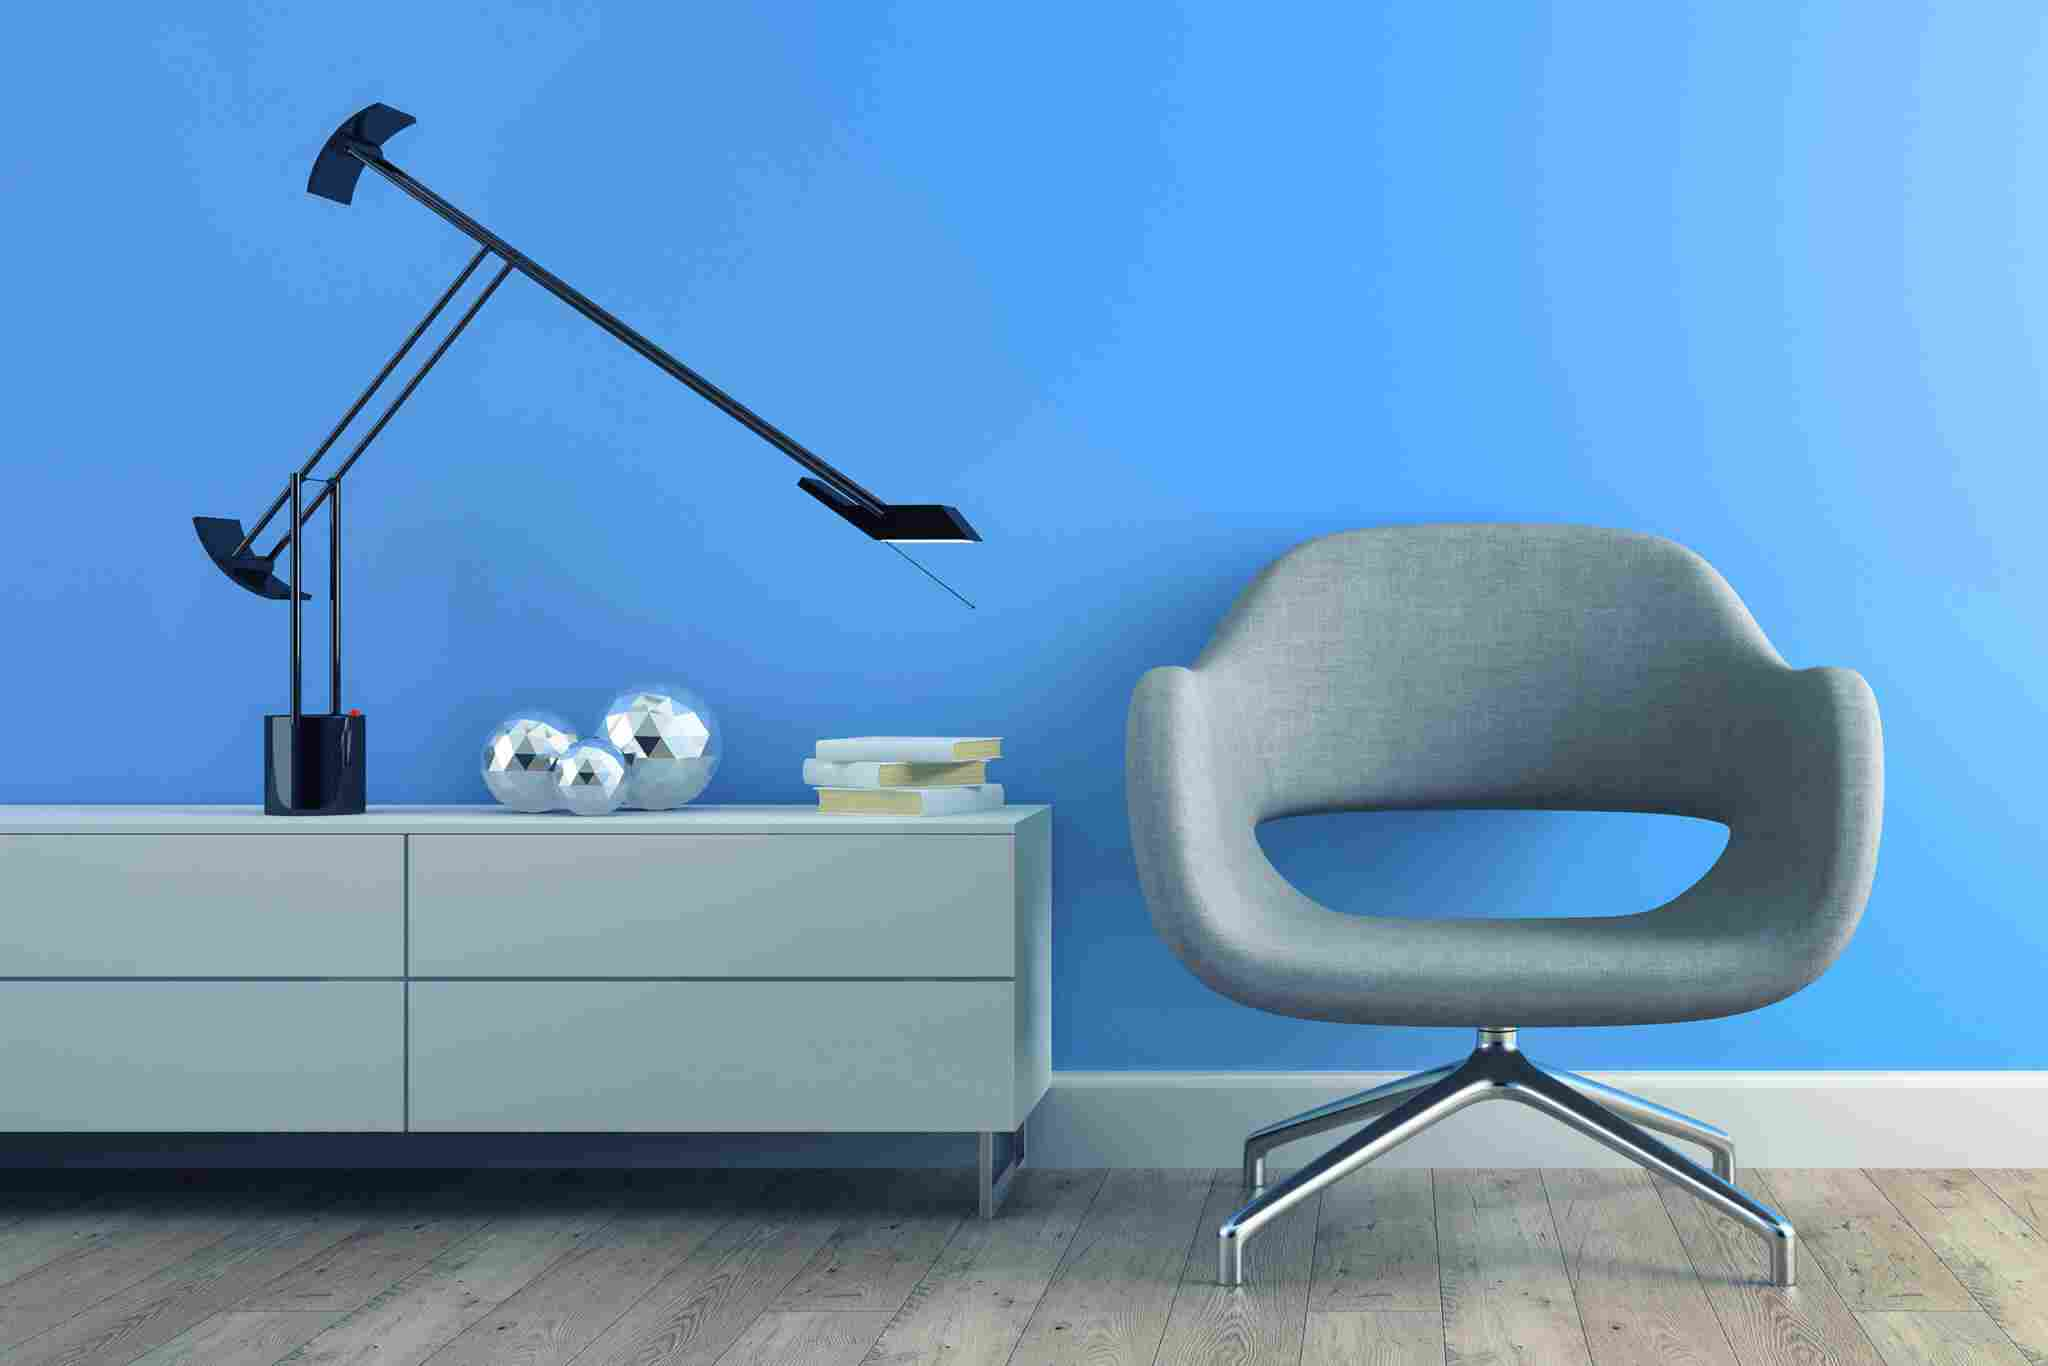 https://akldecor.com/wp-content/uploads/2017/05/image-chair-blue-wall.jpg